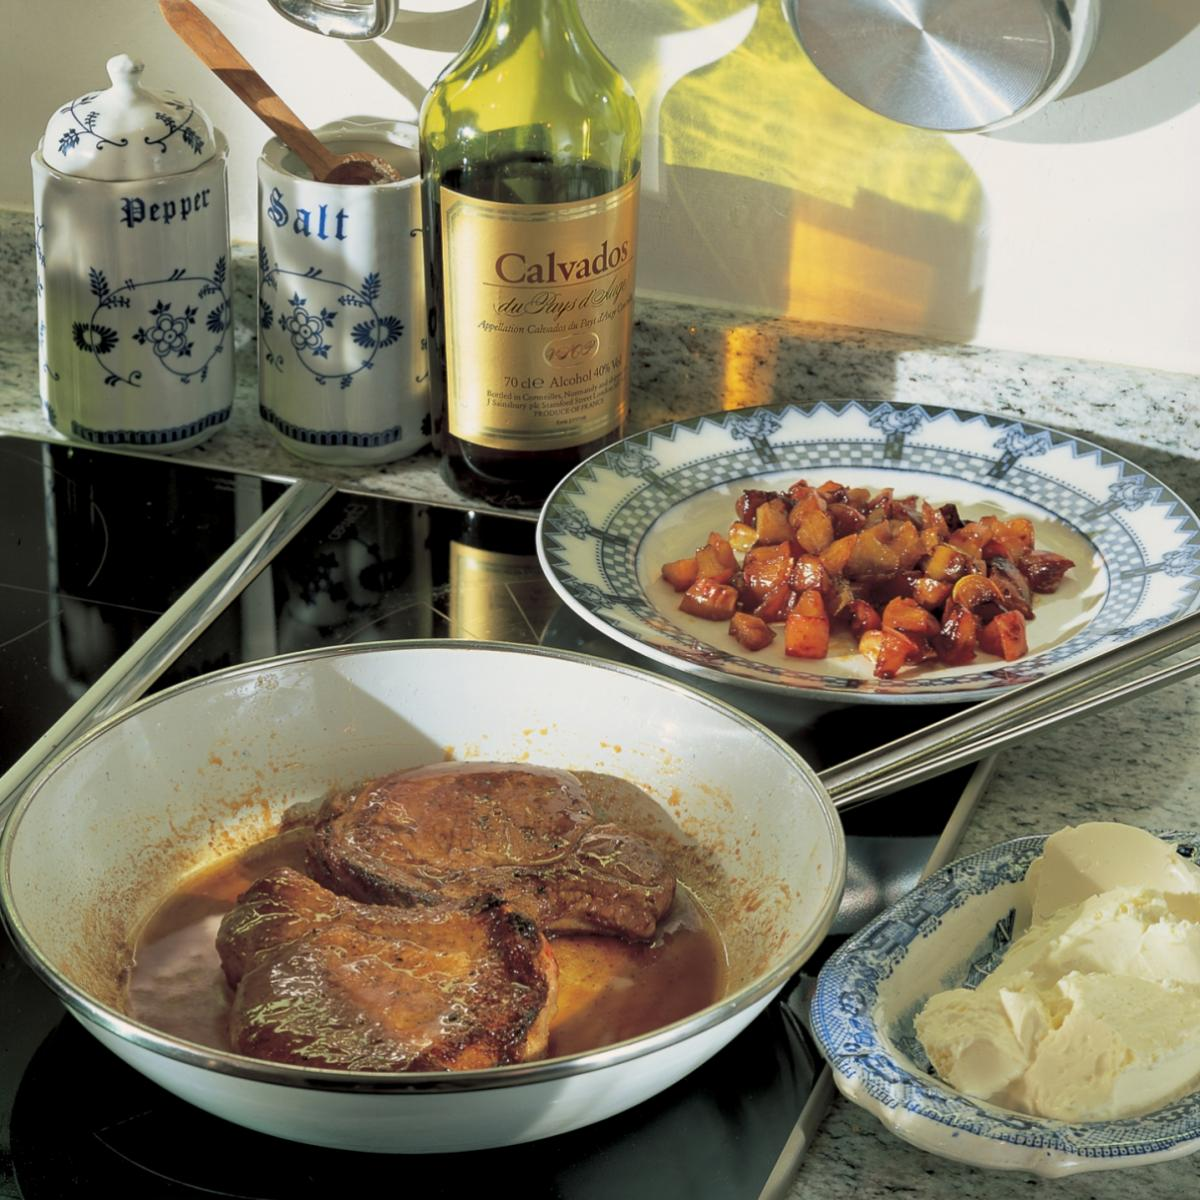 Pork pork with apples and calvados